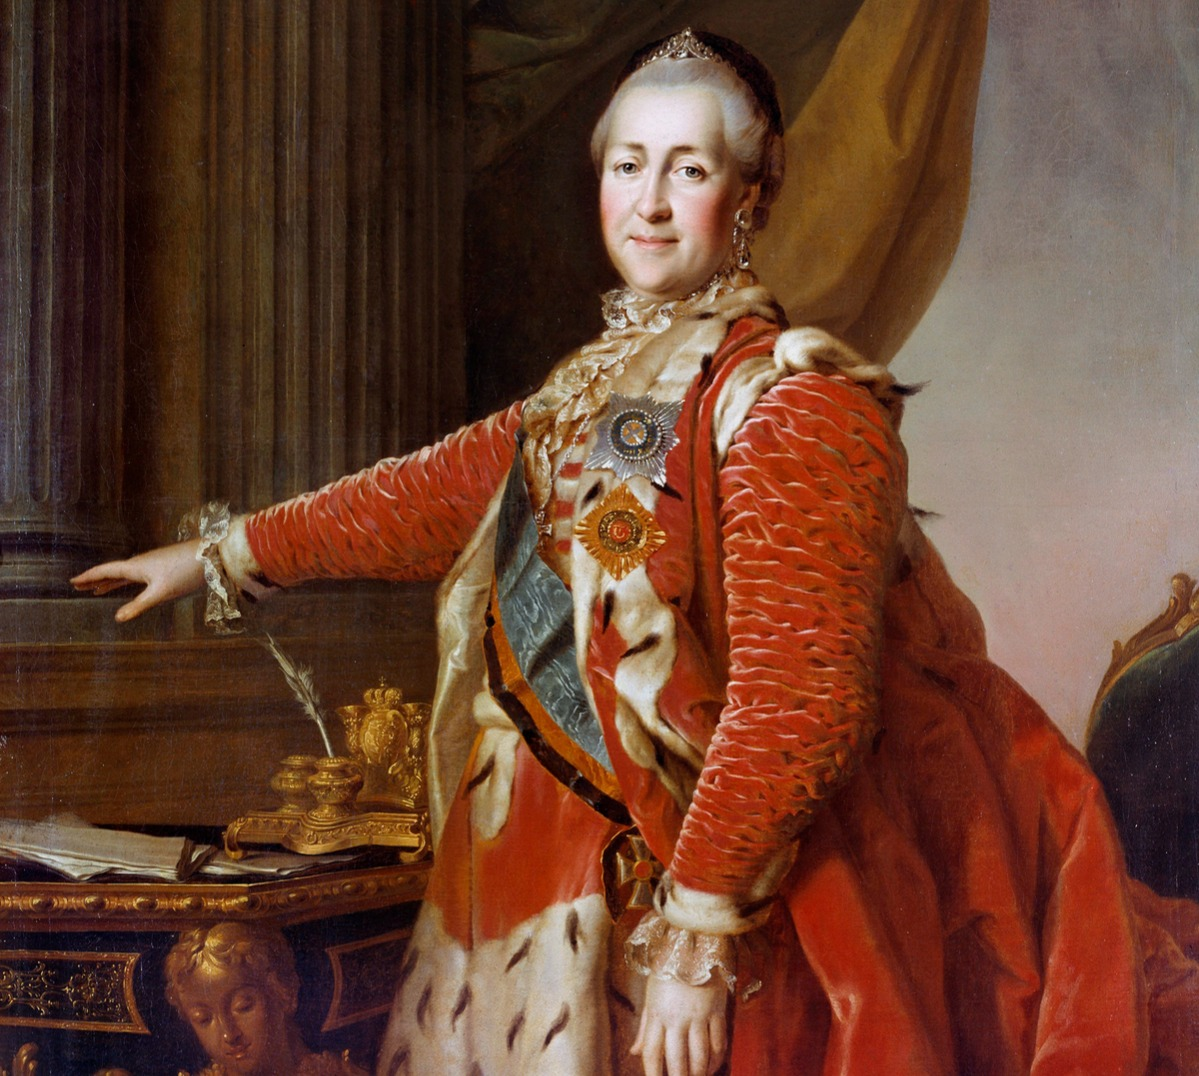 Portrait of the Empress Catherine II of Russia (1729-1796) in red ceremonial dress. Painting by Dimitri Levitzky